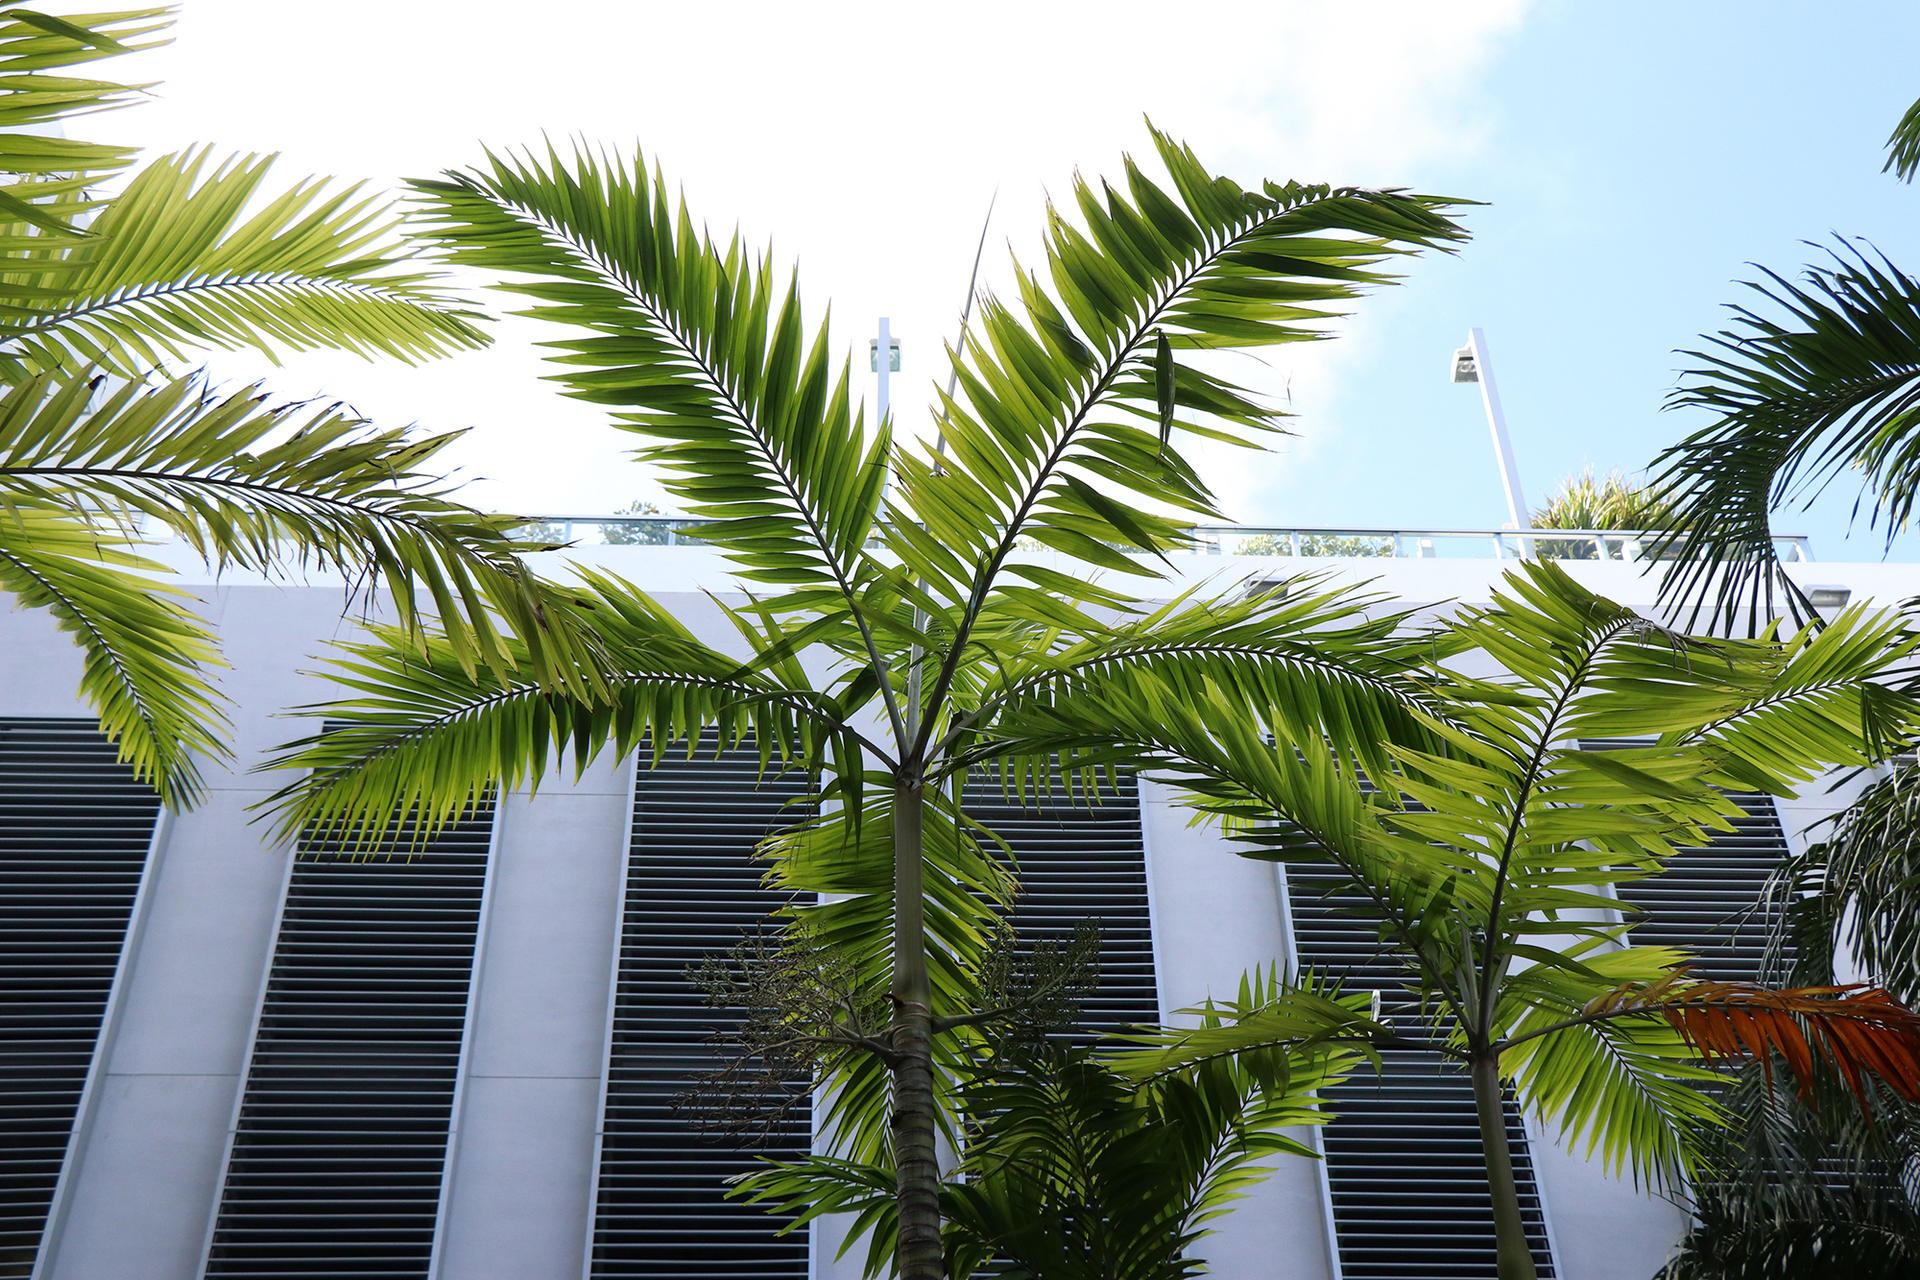 palm tree next to building